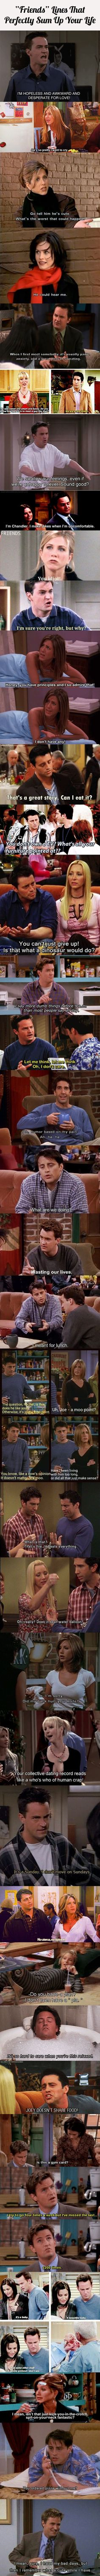 "30 ""Friends"" Lines That Perfectly Sum Up Your Life"